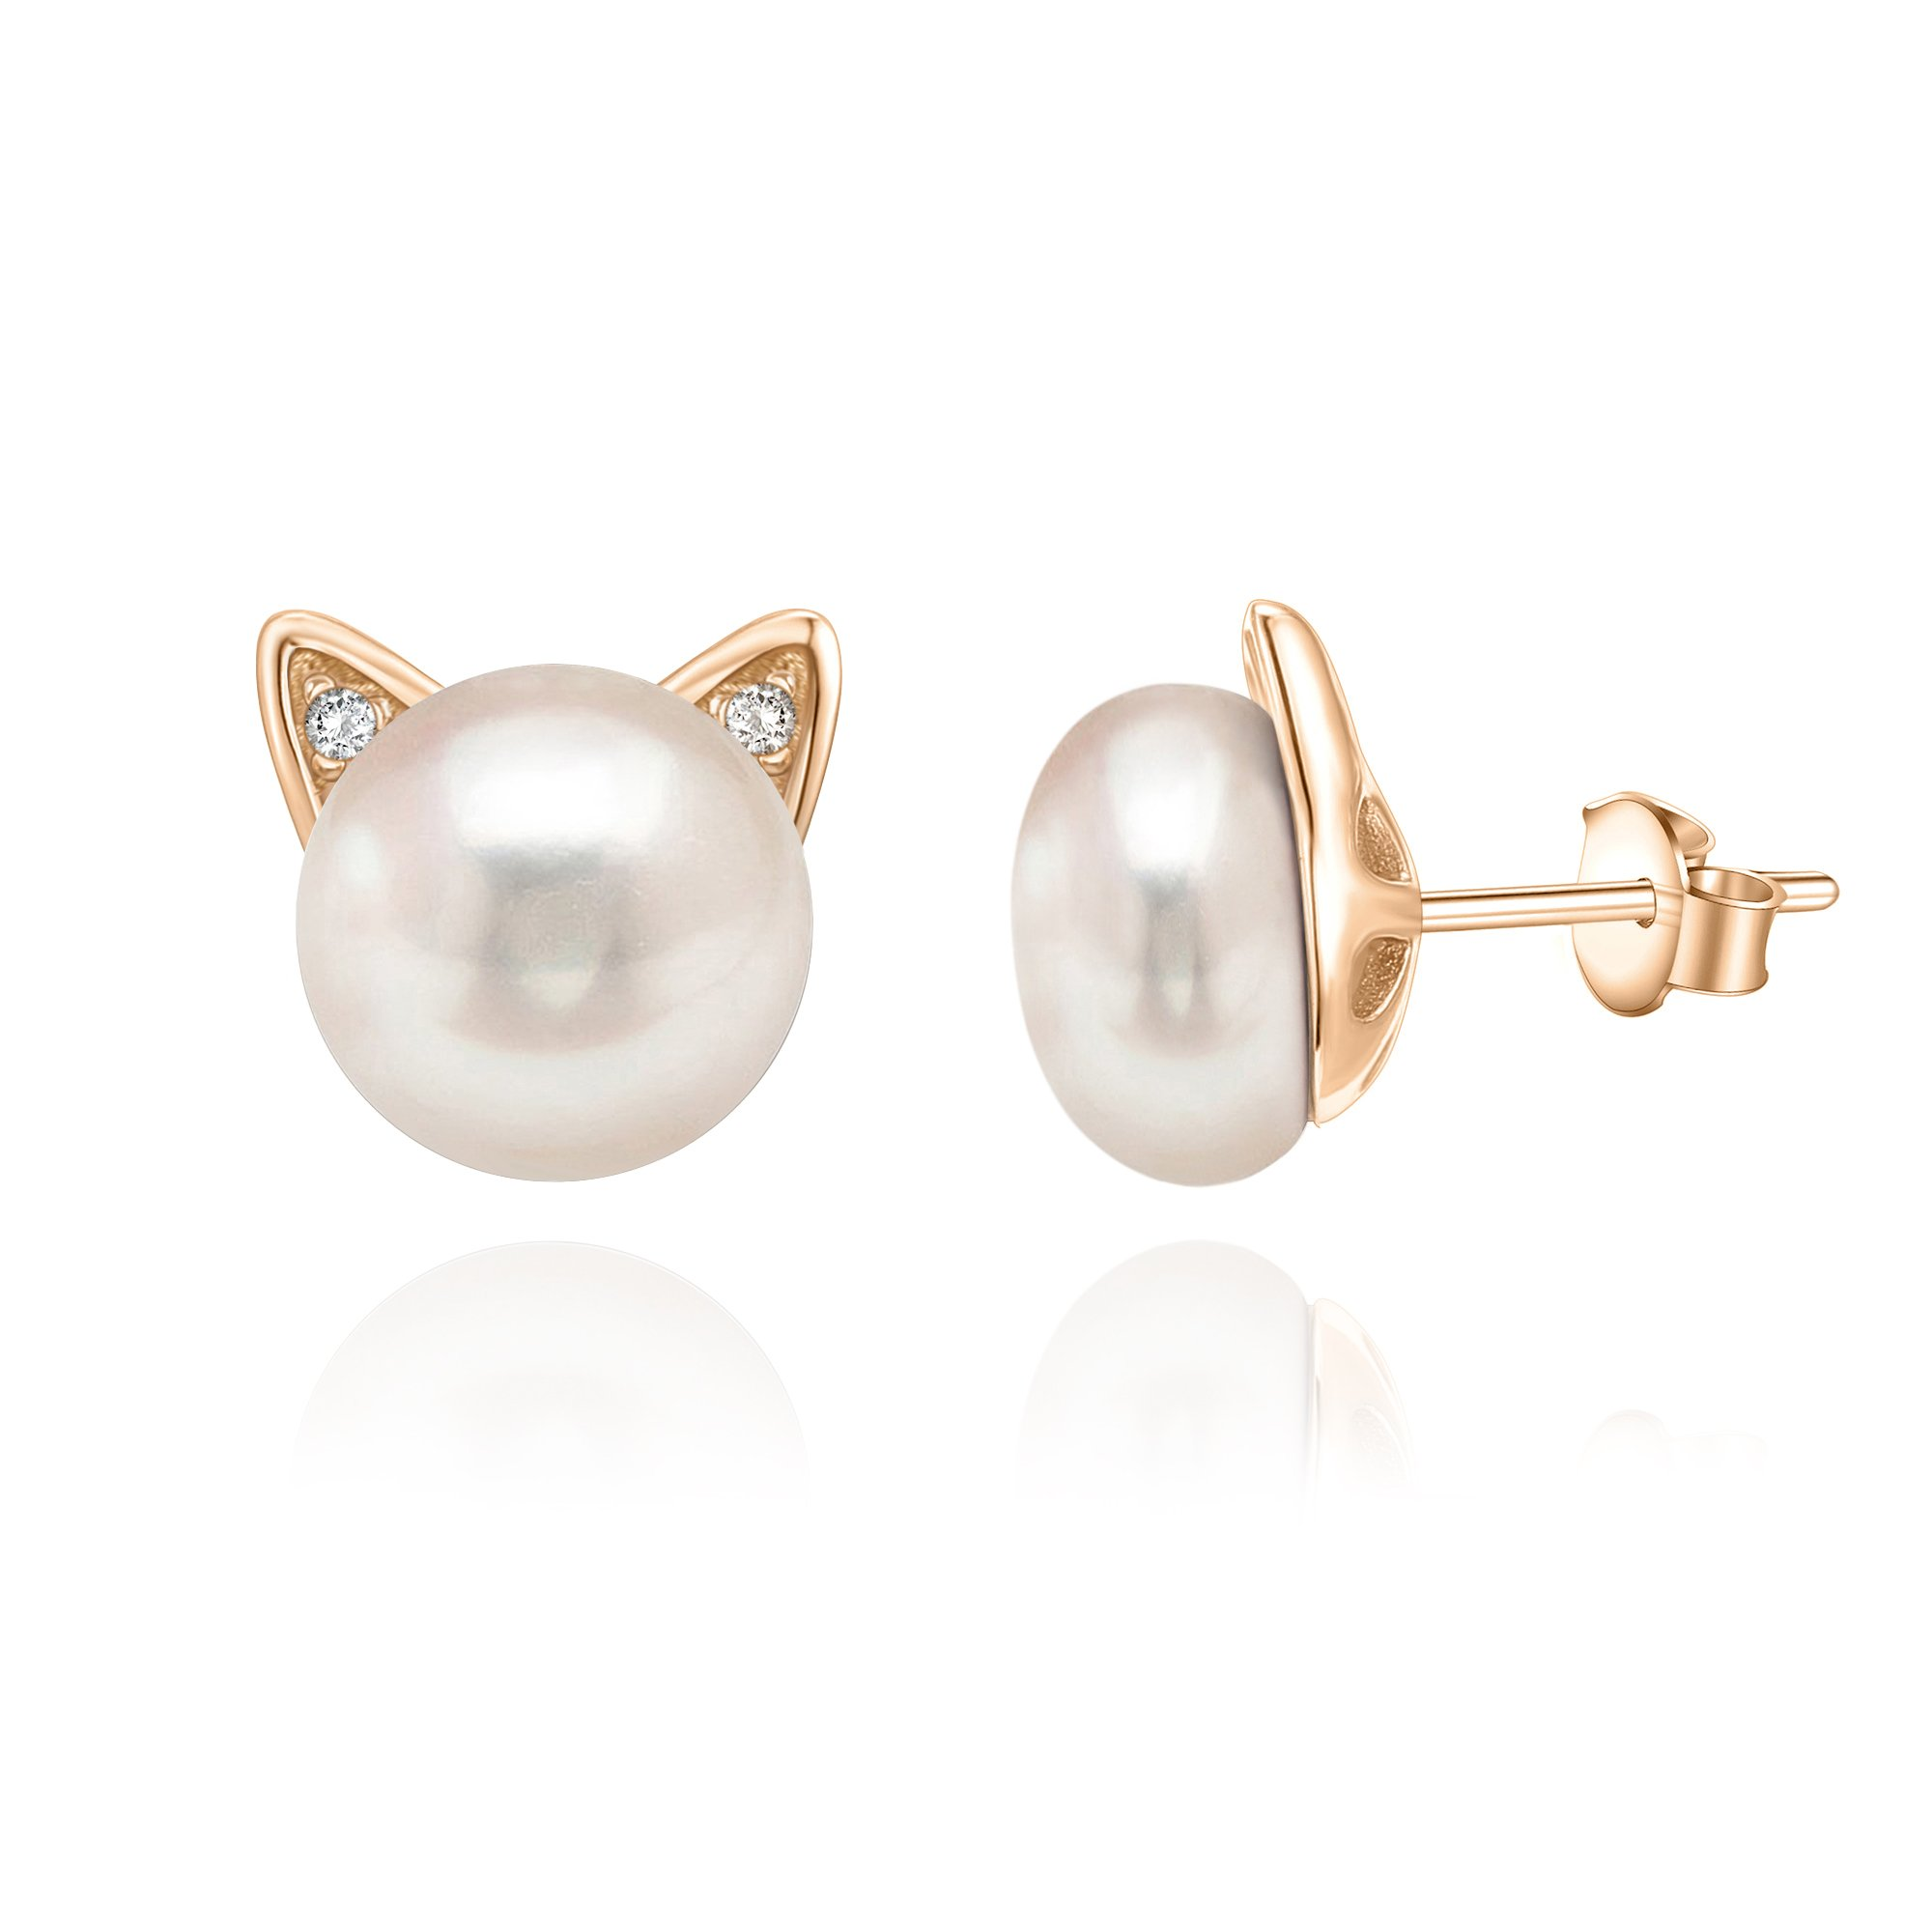 PAVOI 14K Rose Gold Plated Cat Pearl Earrings